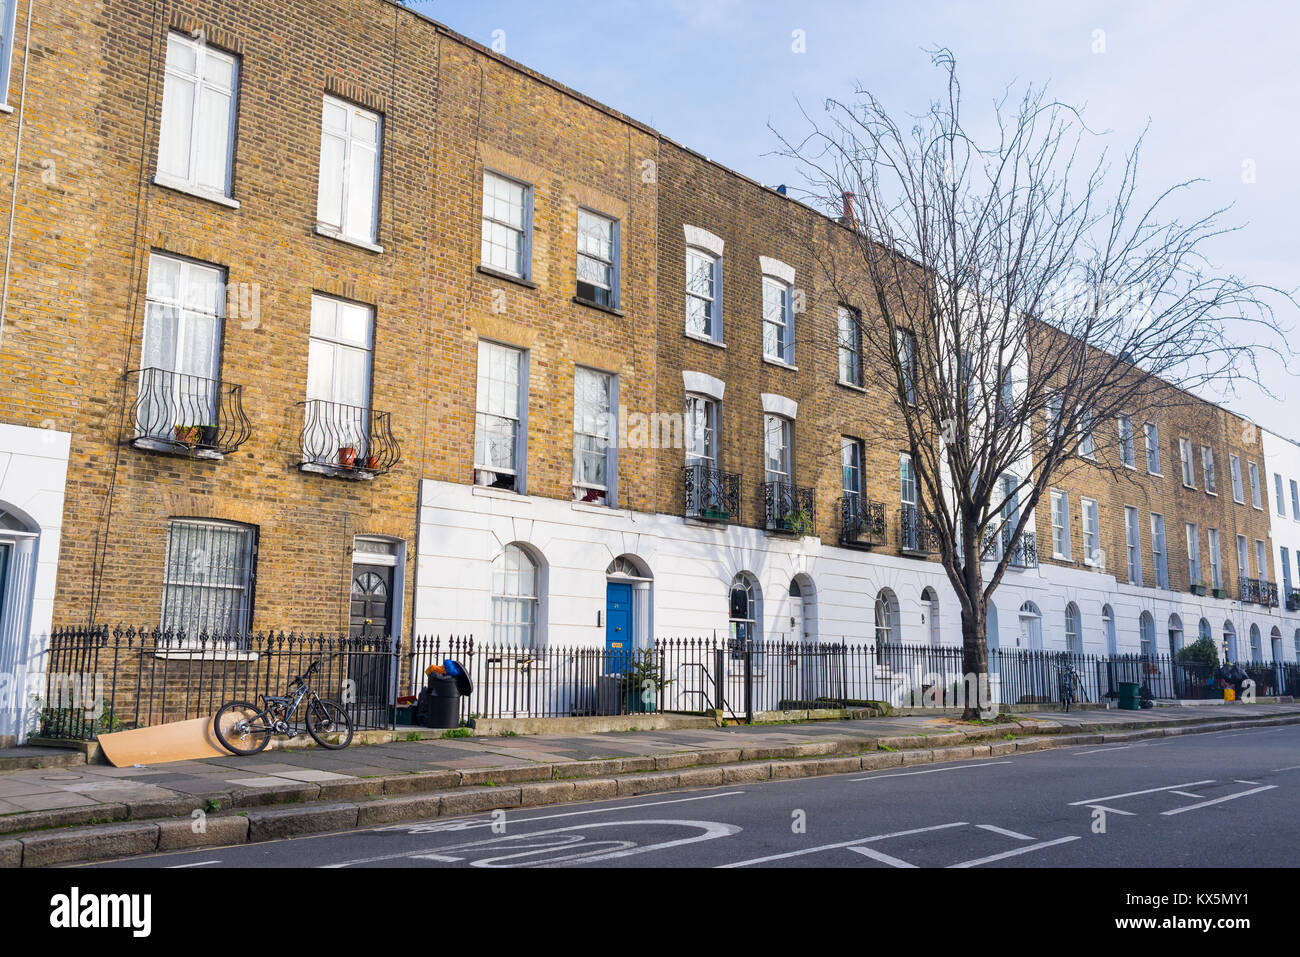 Angel, London, UK - January 2018: Quiet street in Angel, North London with no cars and Edwardian Victorian restored - Stock Image